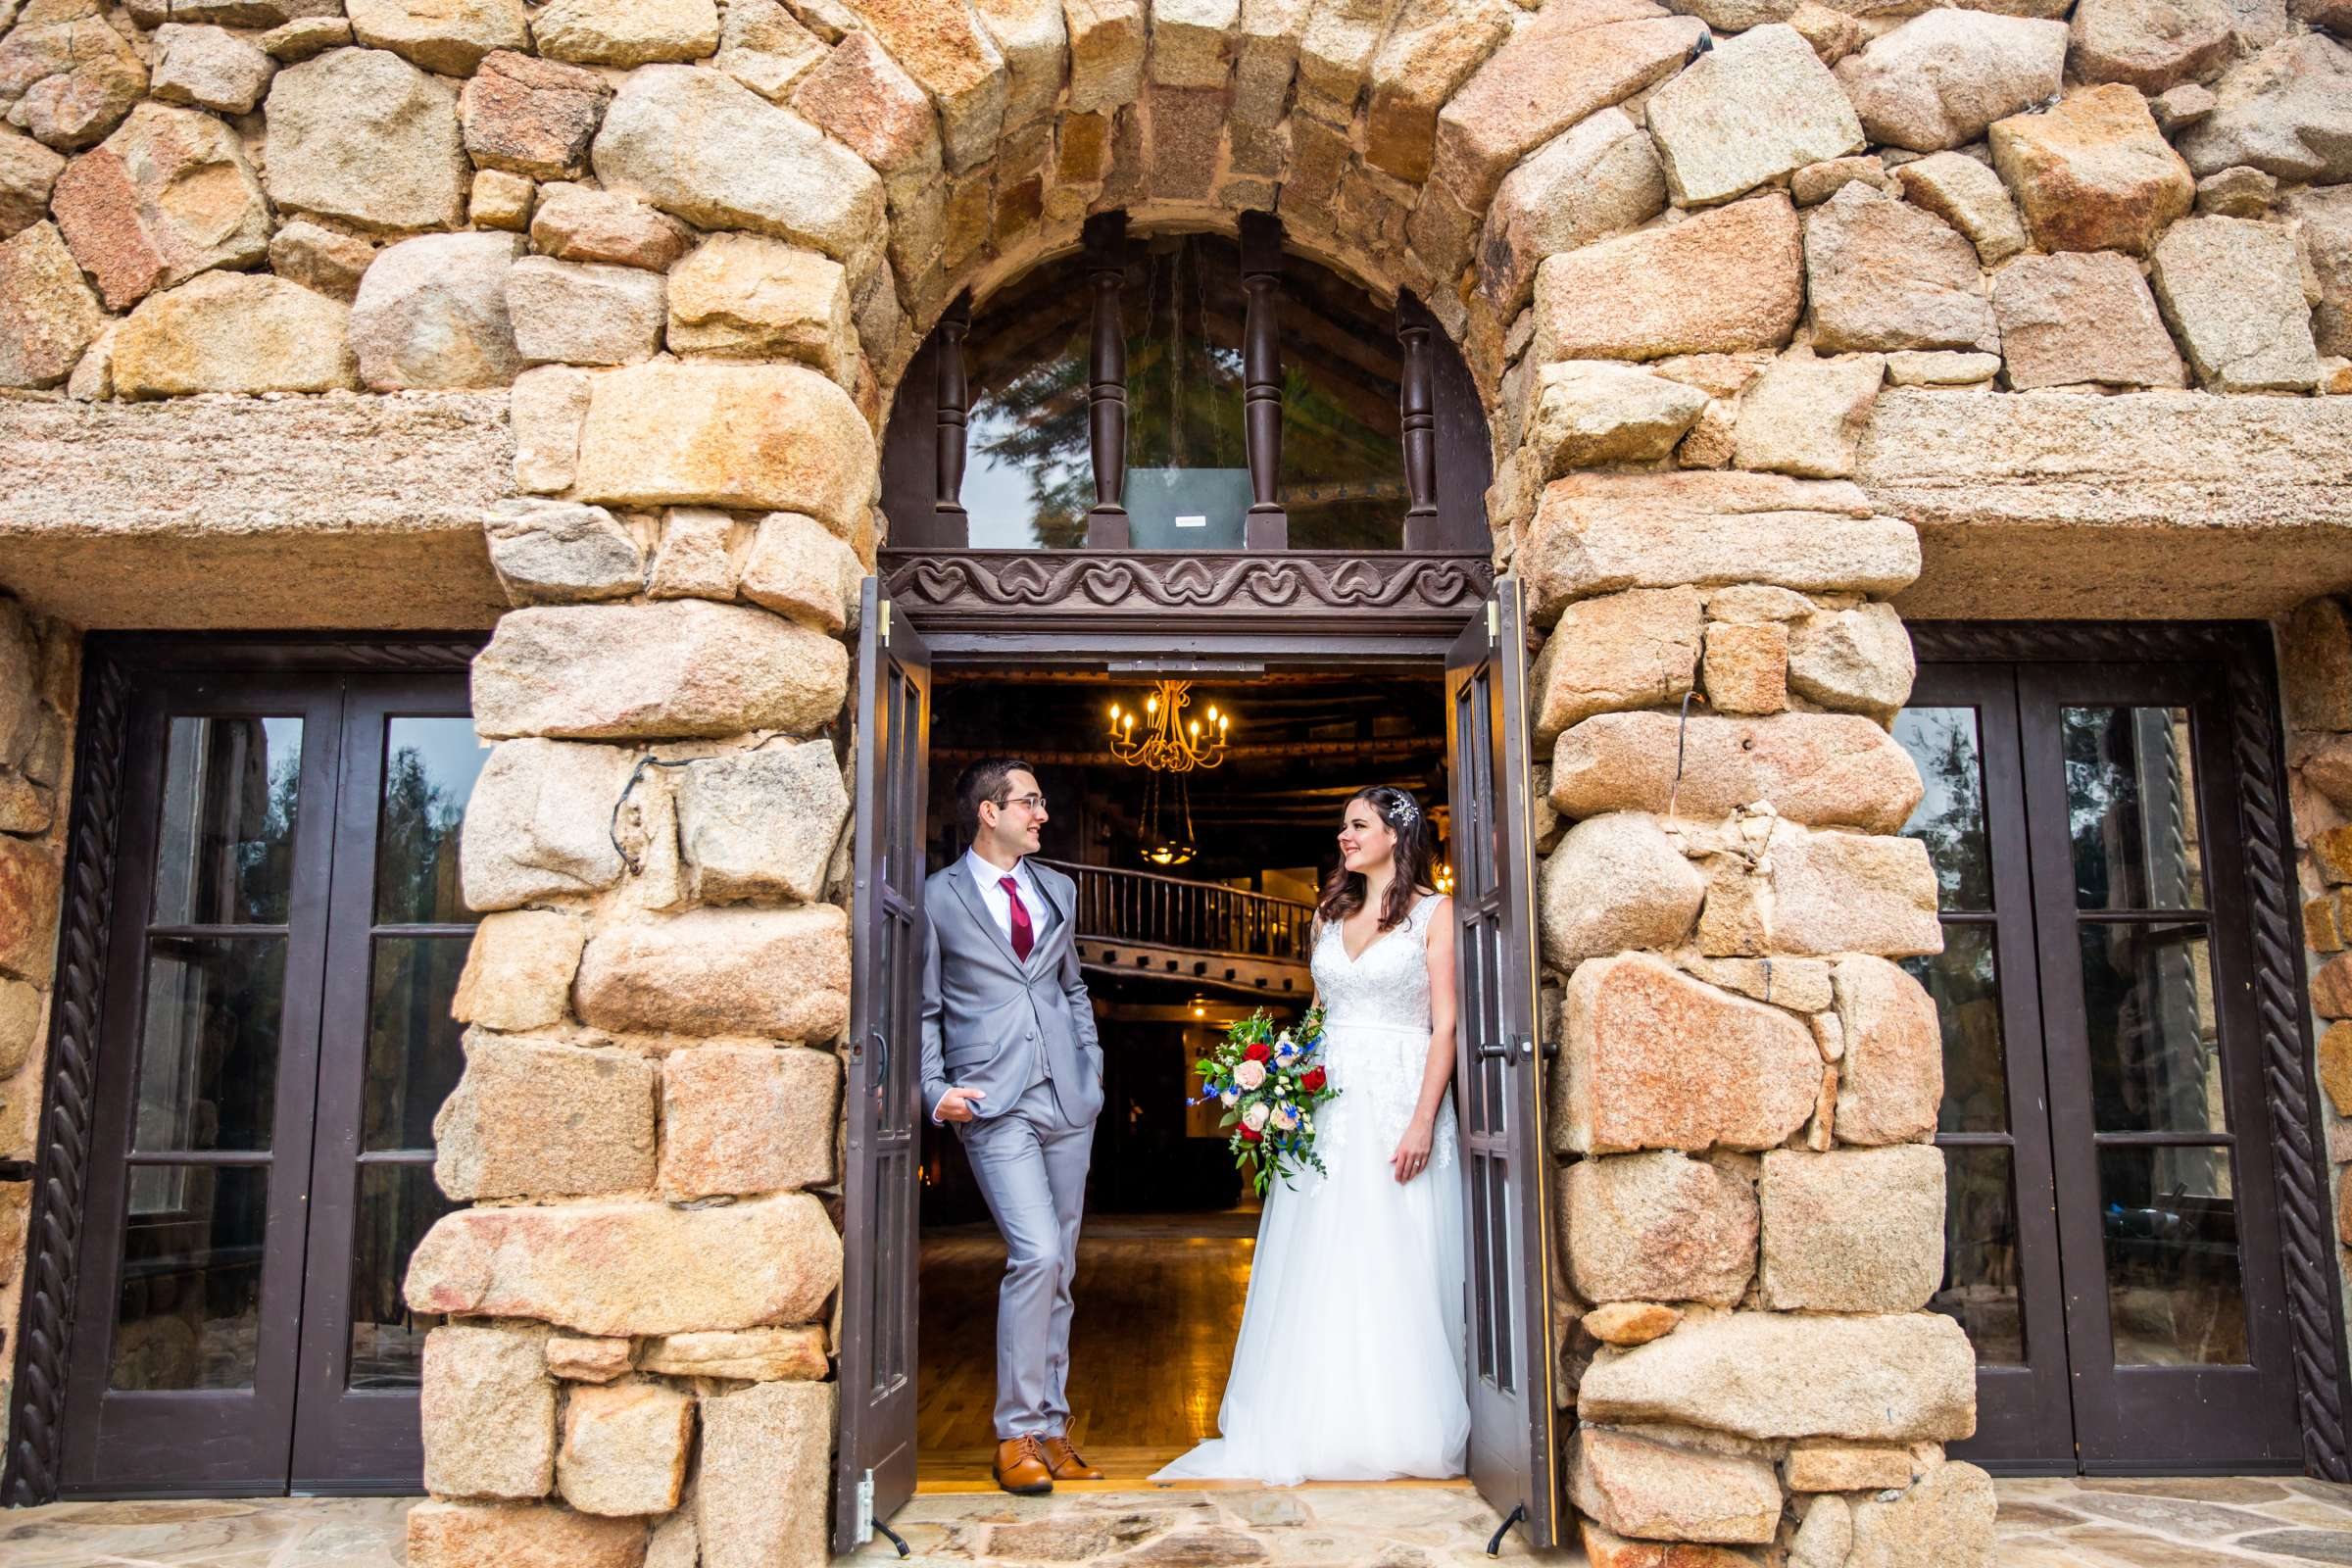 Mt Woodson Castle Wedding, Valerie and Ian Wedding Photo #32 by True Photography